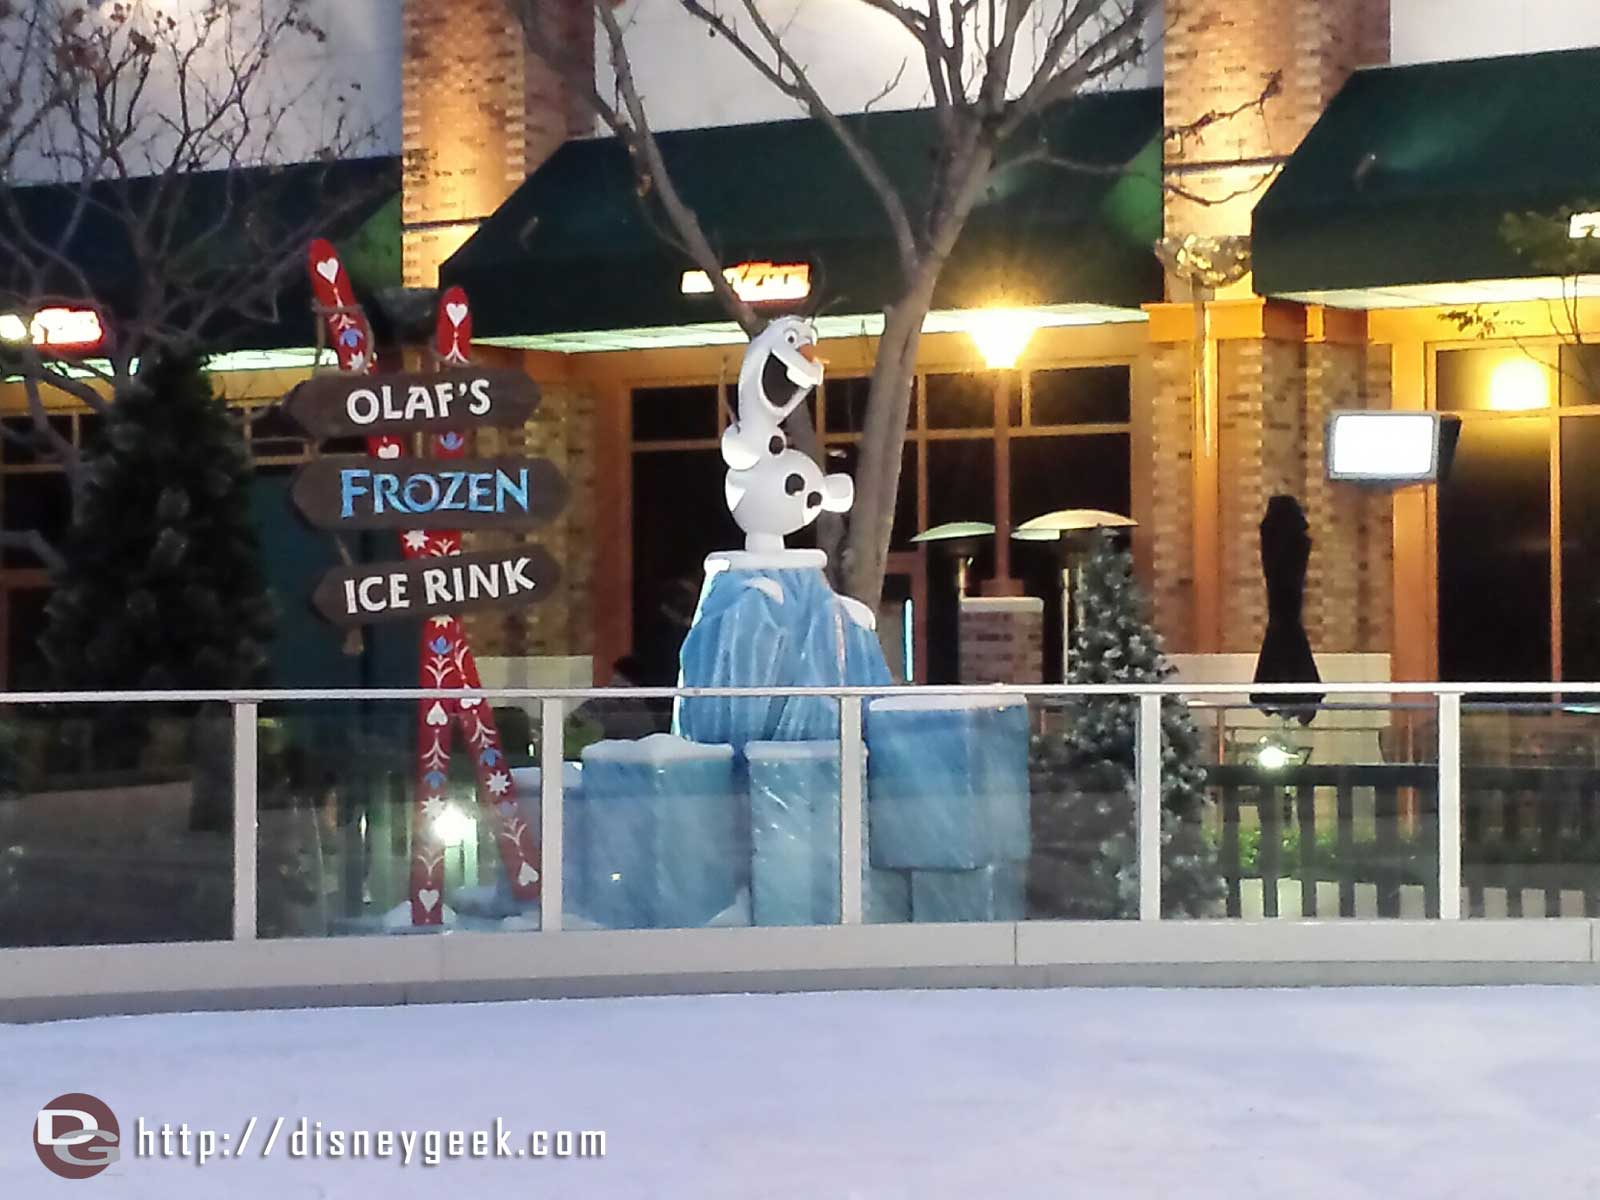 Olaf watching over his ice rink